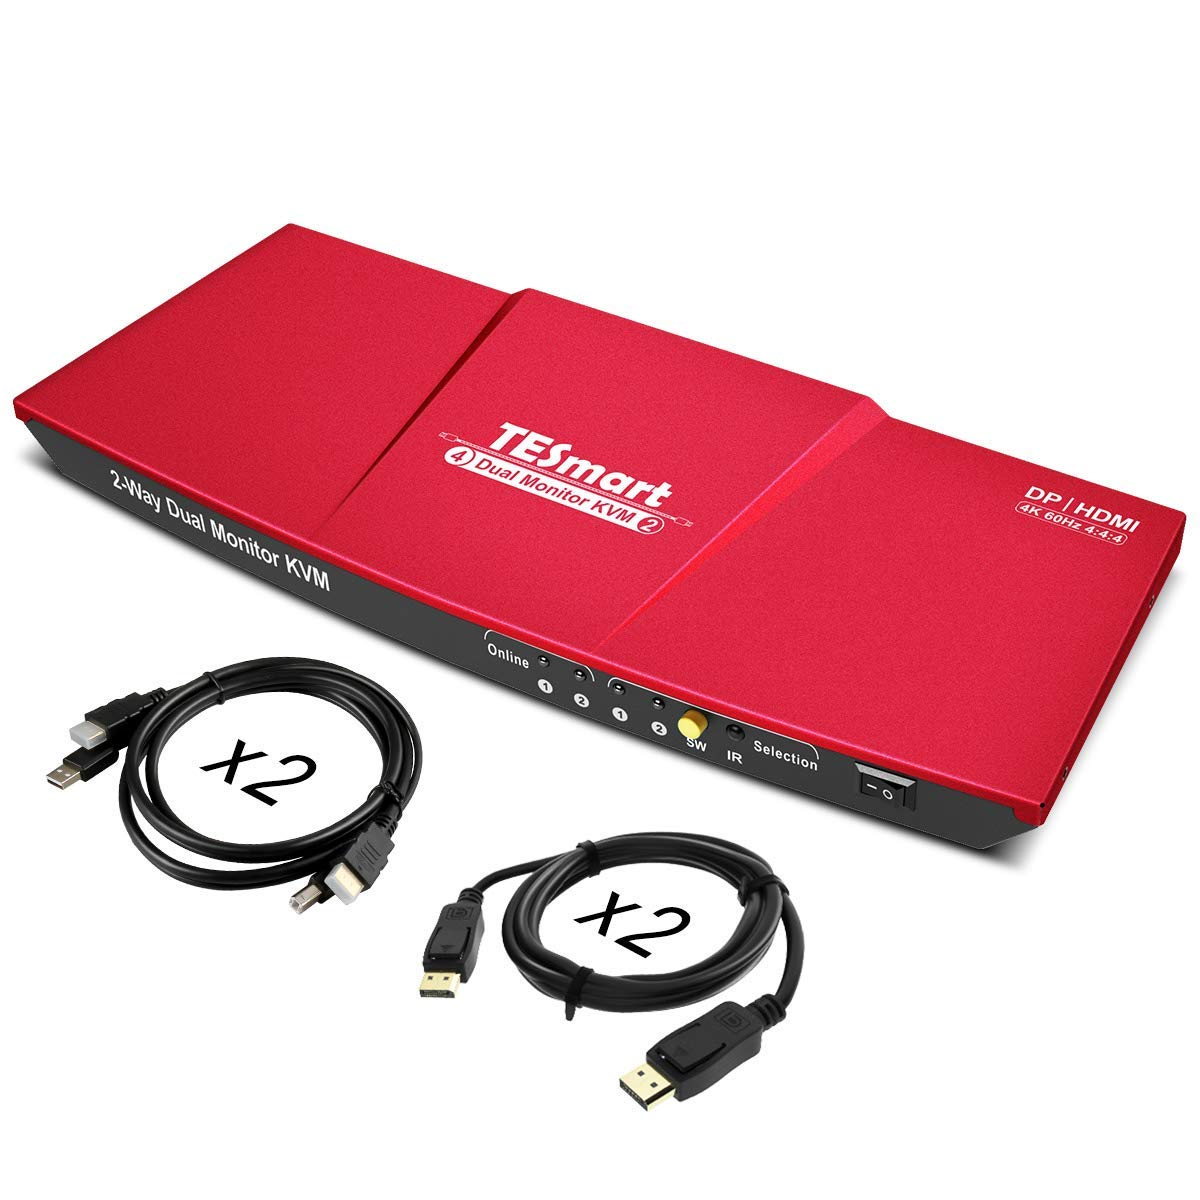 TESmart DisplayPort Dual Monitor KVM Switch Support UHD 4K@60Hz USB 2.0 Devices Control up to 2 Computers with (DP+HDMI+USB) Input Ports and 2 Montiors with HDMI Port